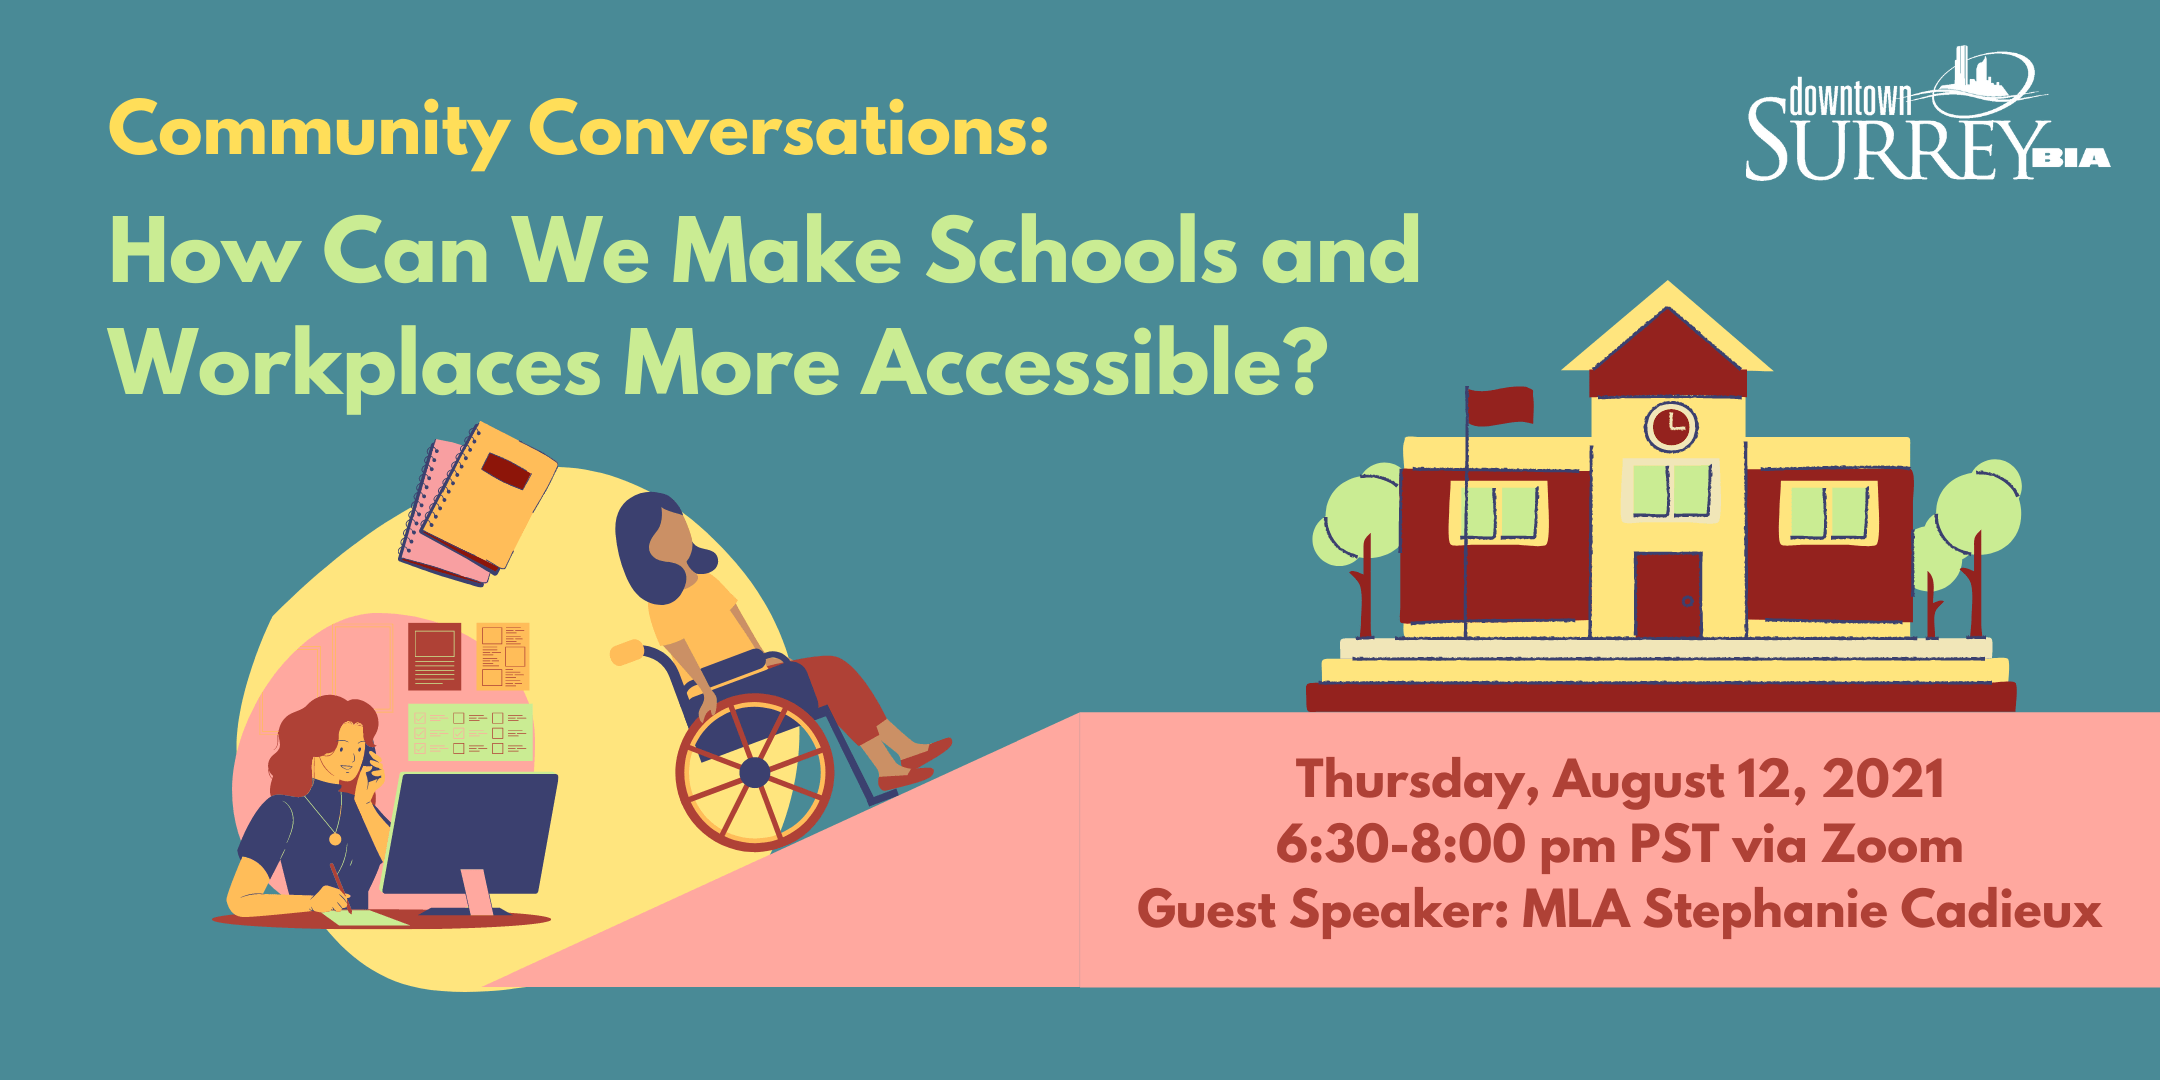 Community Conversations: Making Our Schools and Workplaces More Accessible